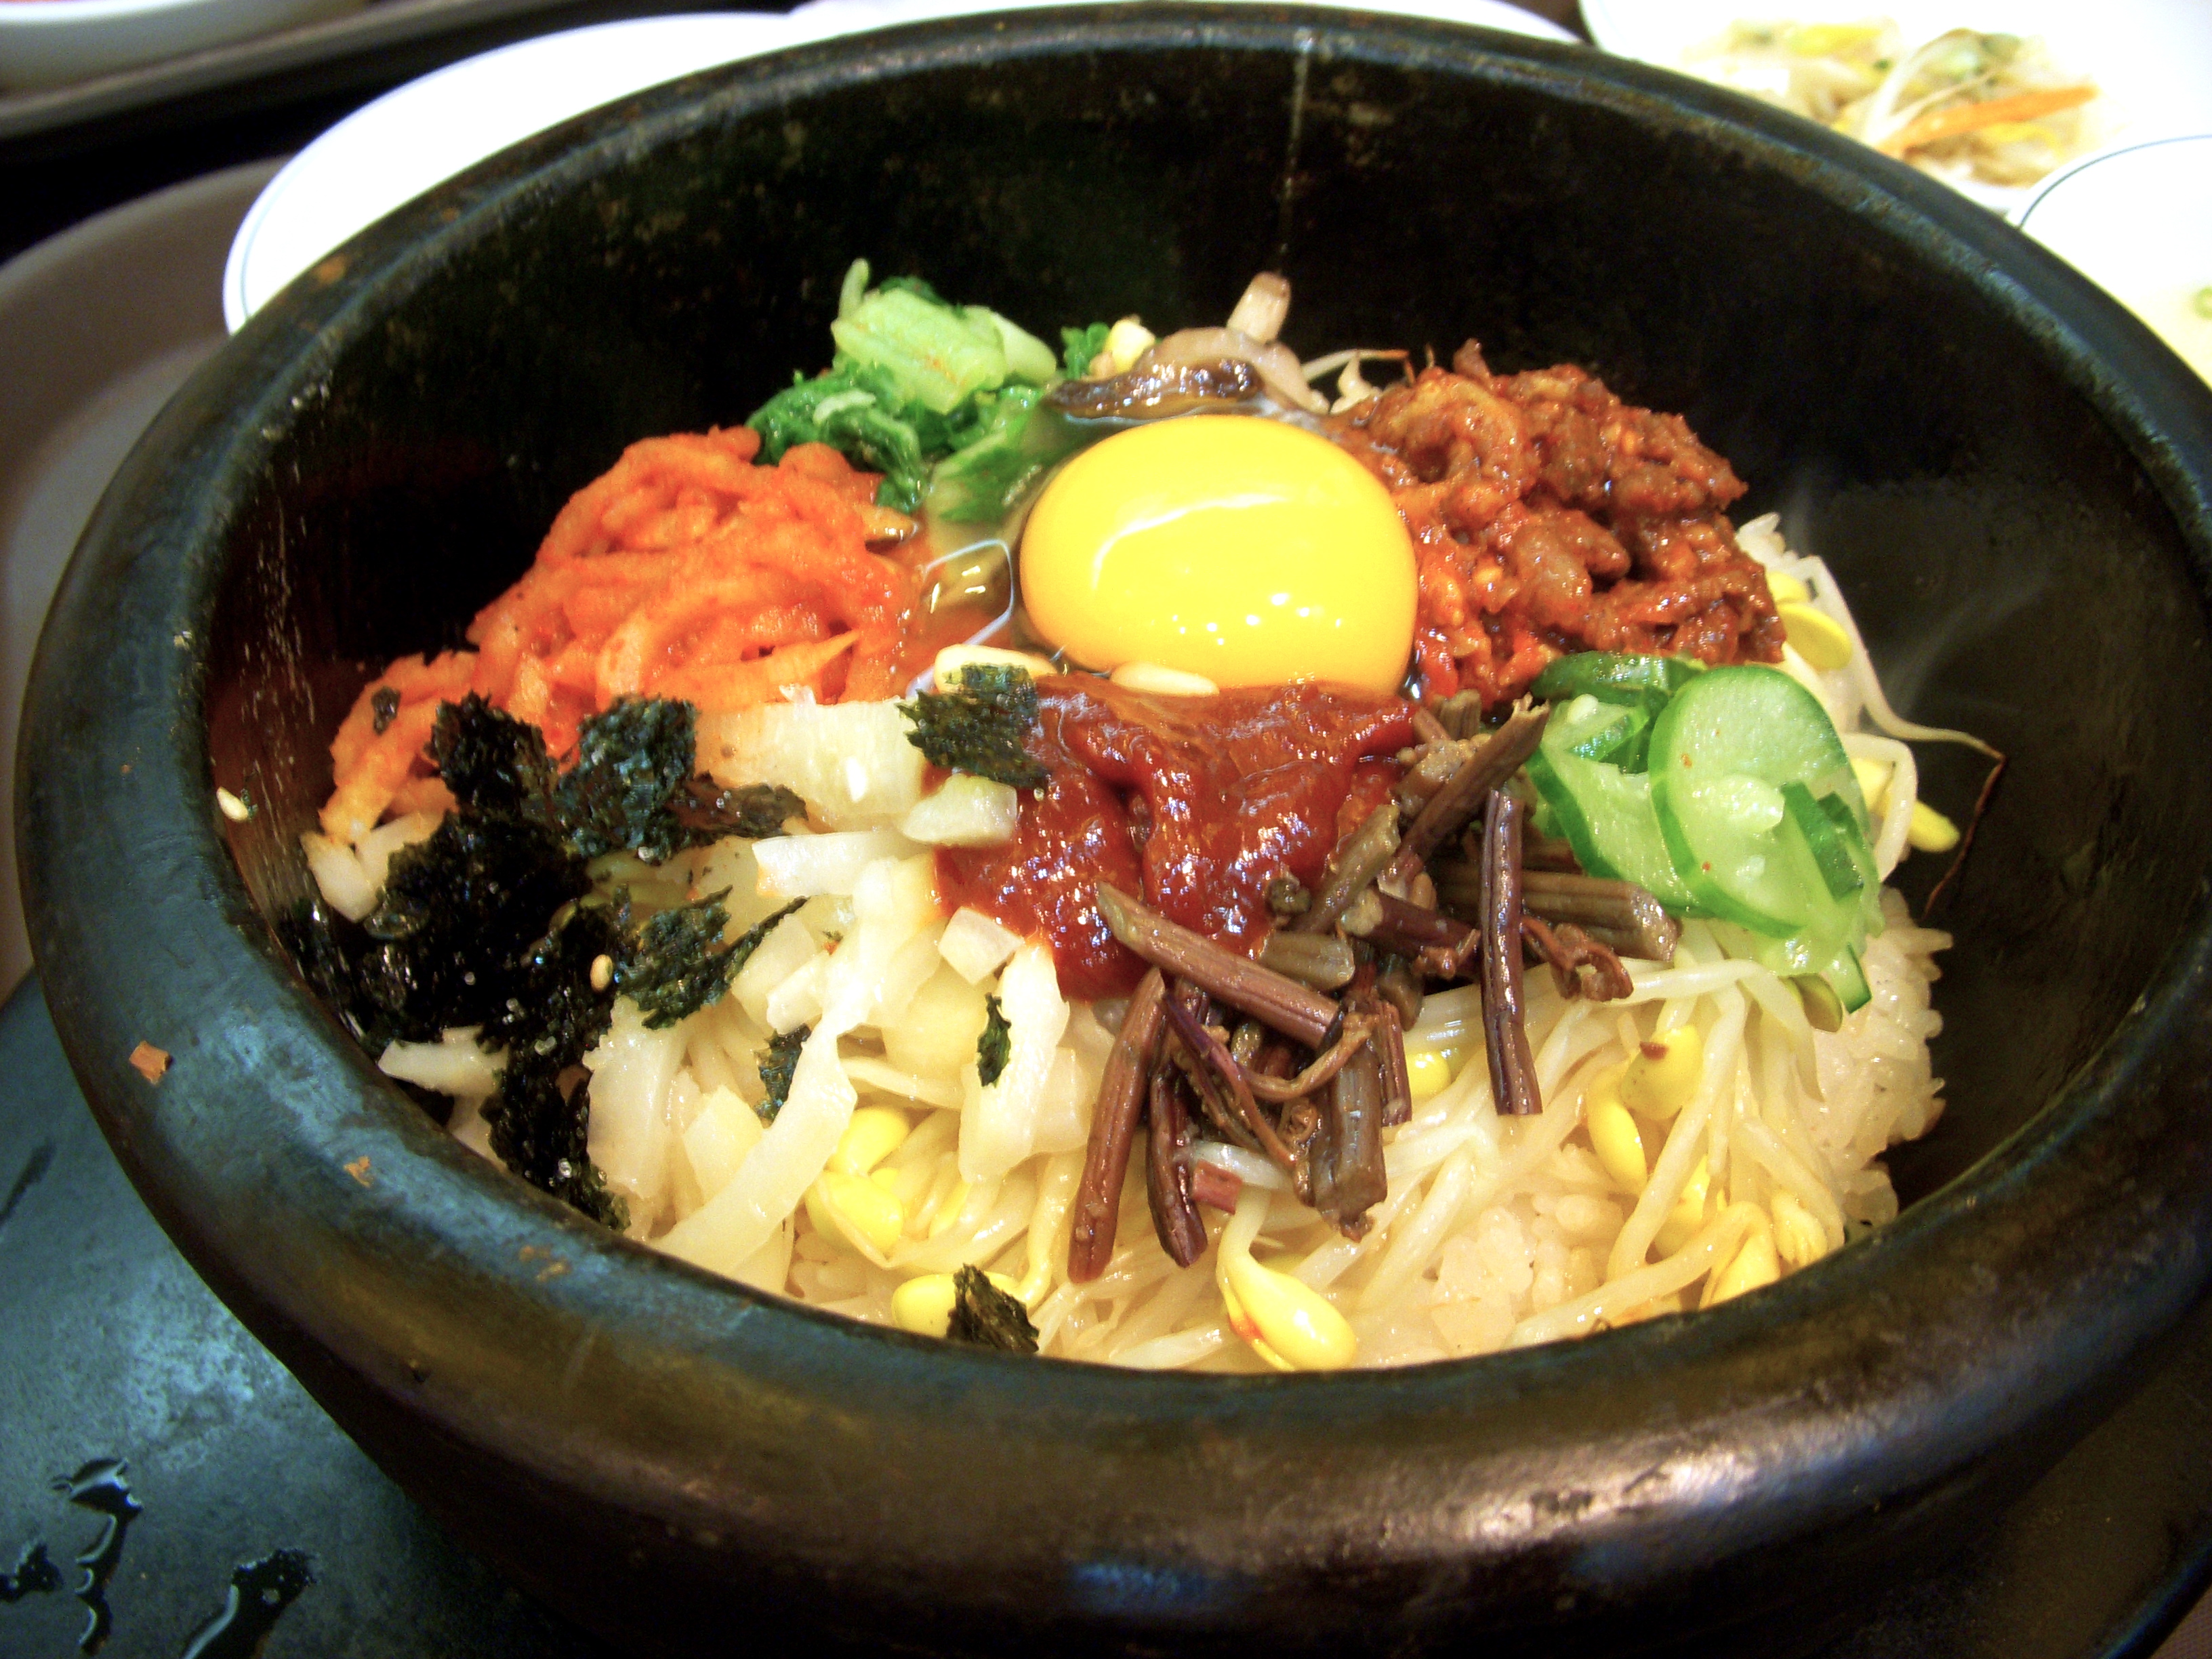 File:Korean.cuisine-Bibimbap-10.jpg - Wikimedia Commons